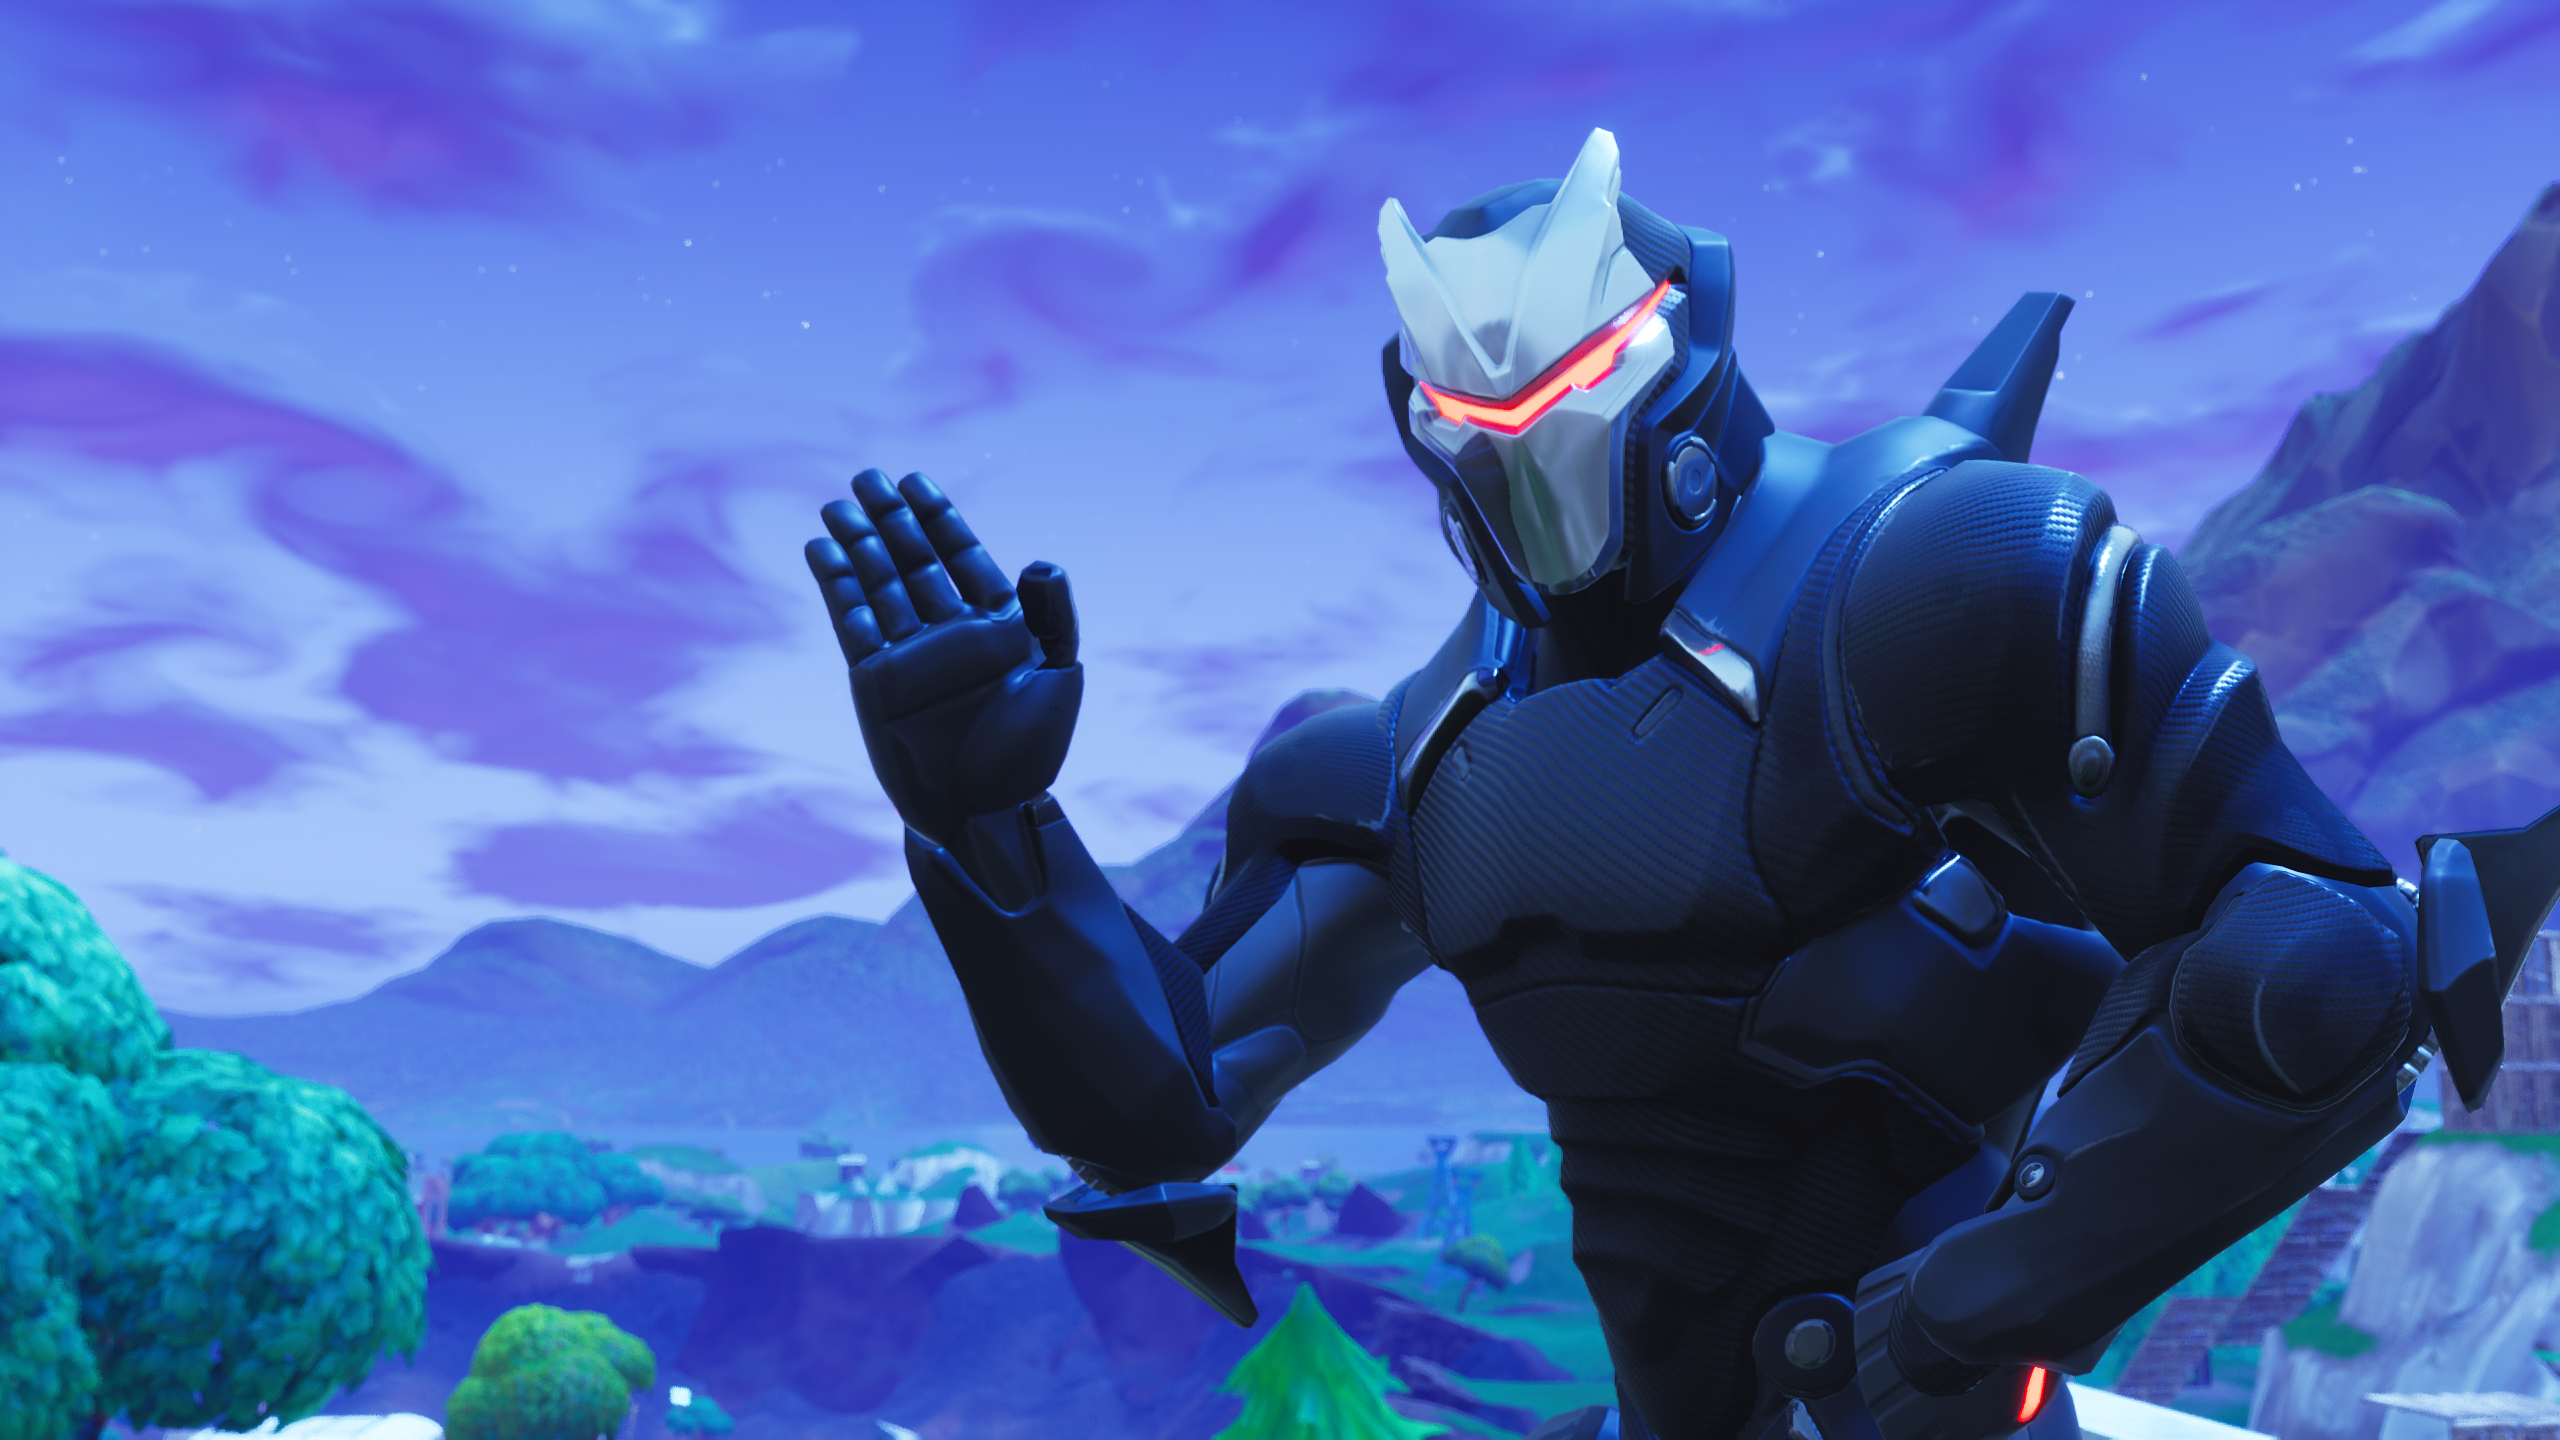 Fortnite Background 2560x1440 Posted By Samantha Simpson